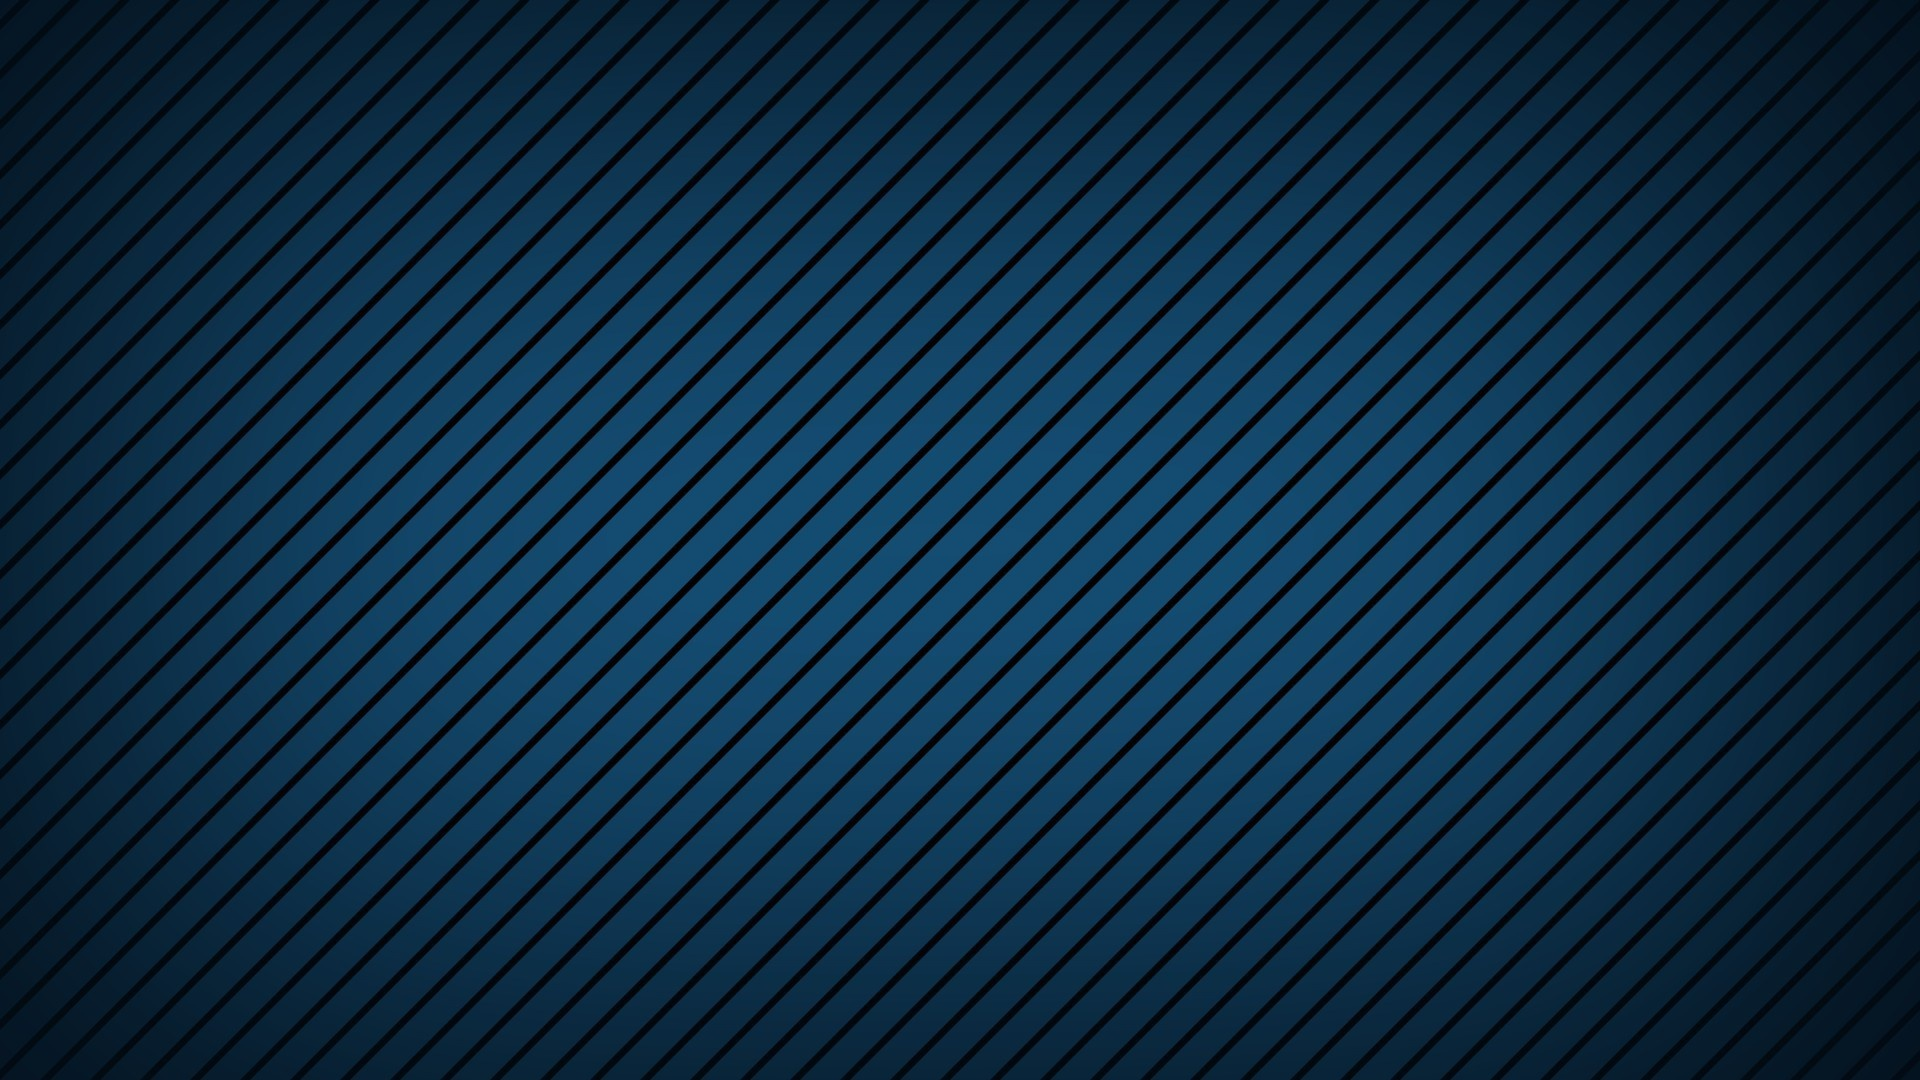 texture background blue wallpaper strips blackjpg 1920x1080